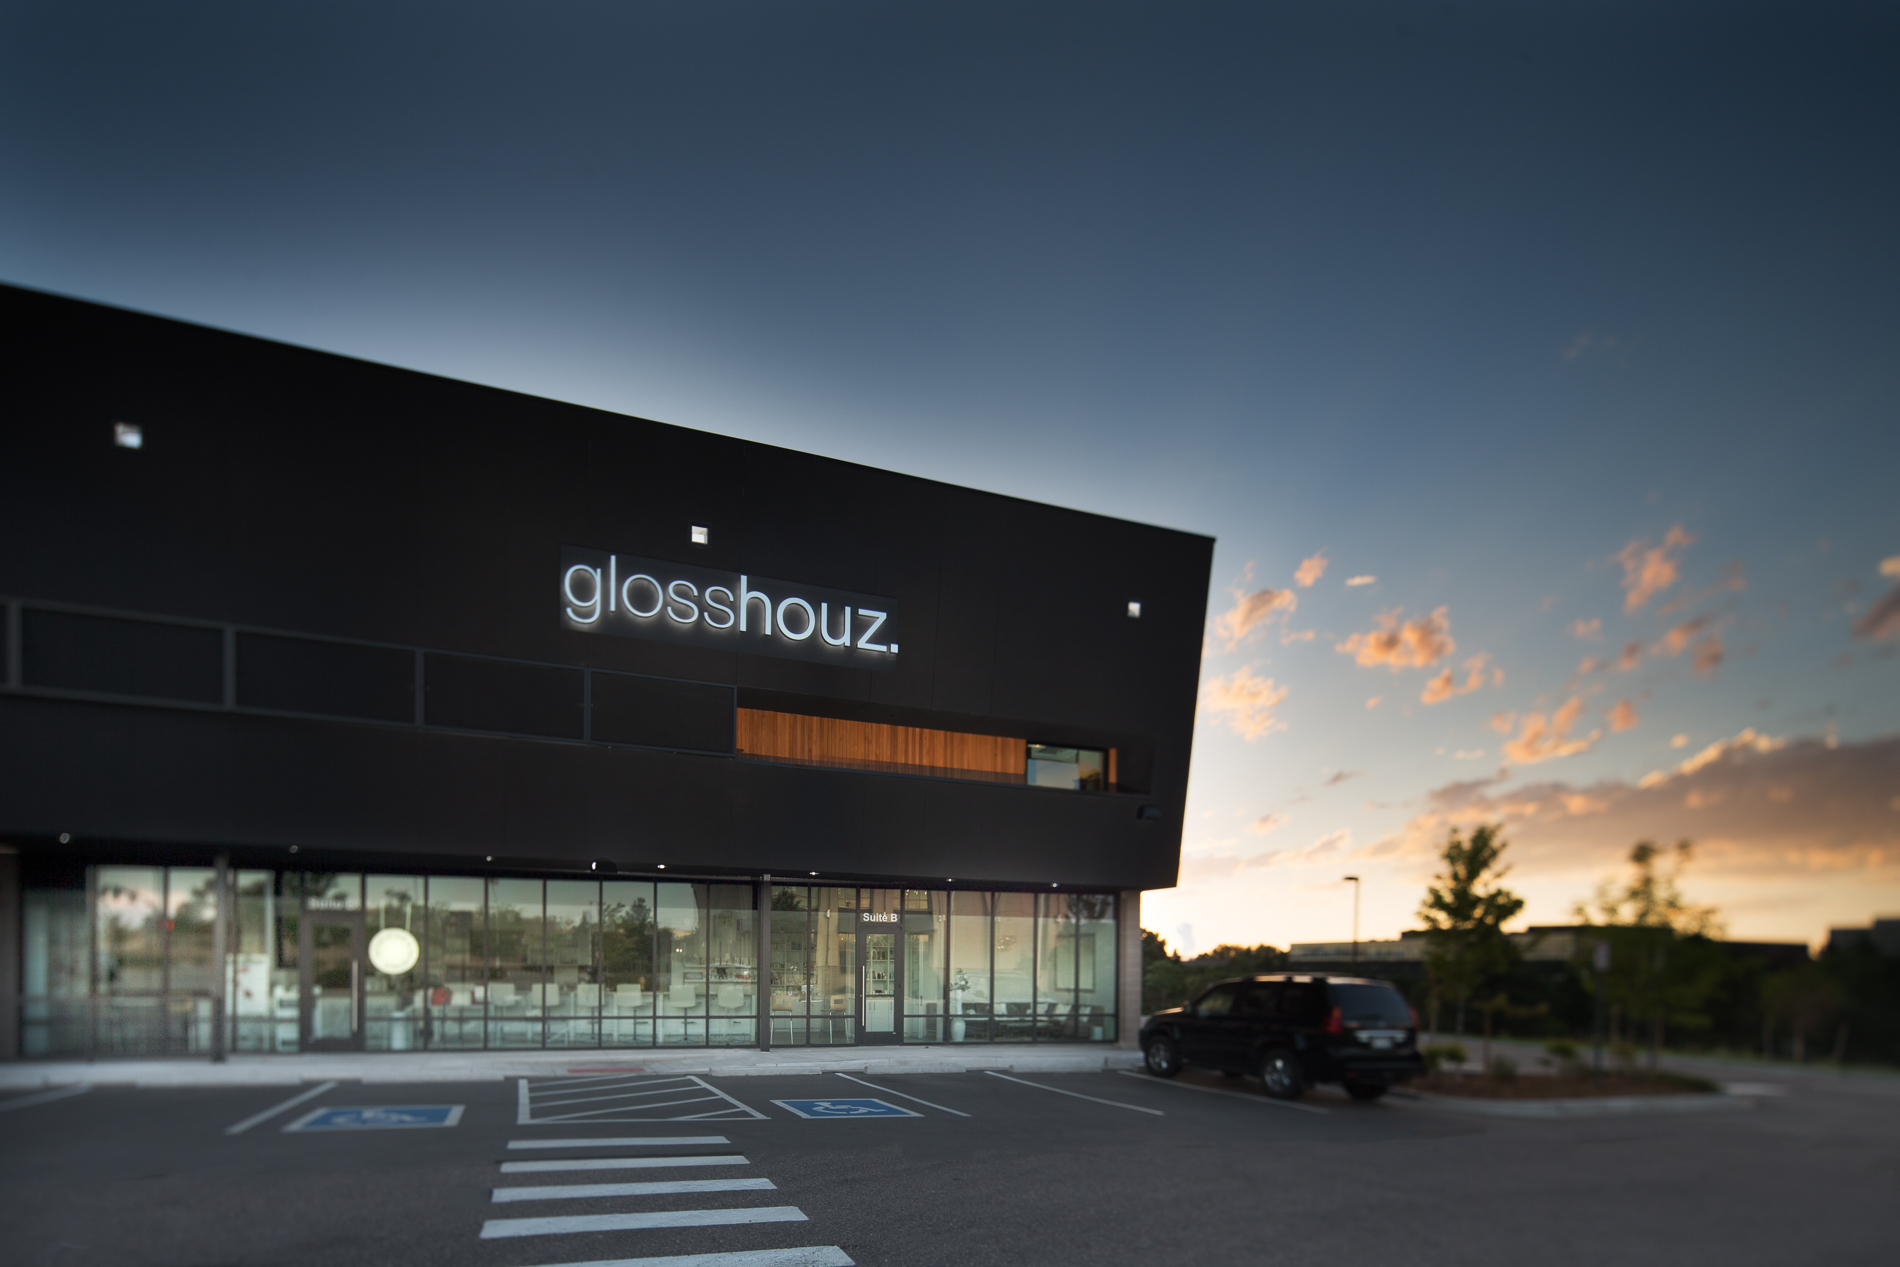 Glosshouz near Park Meadows Mall